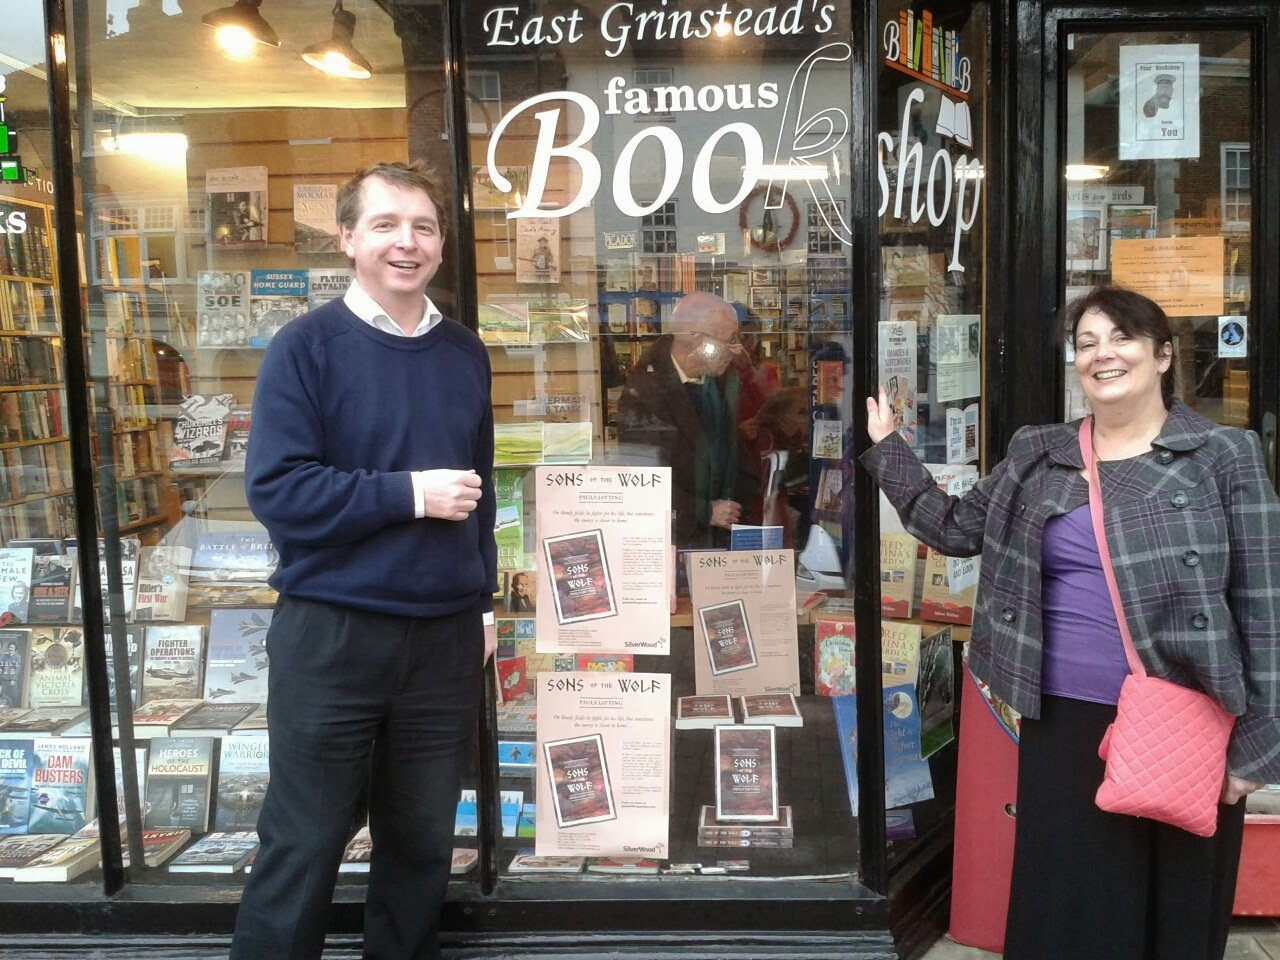 Me the author with John Pye, Independent book shop owner